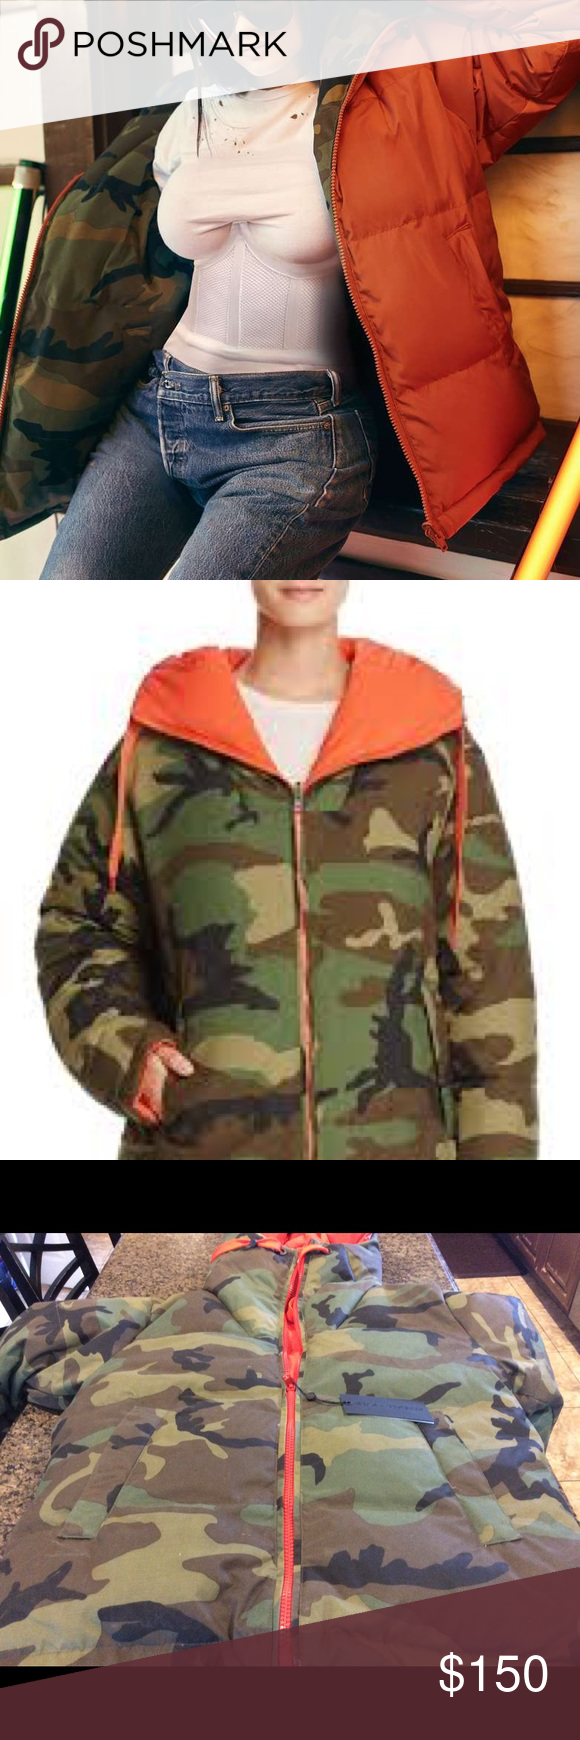 c82db4735148f Kendall and Kylie Camo Reversible Jacket Sz M The hunt for a tomboy-chic  topper